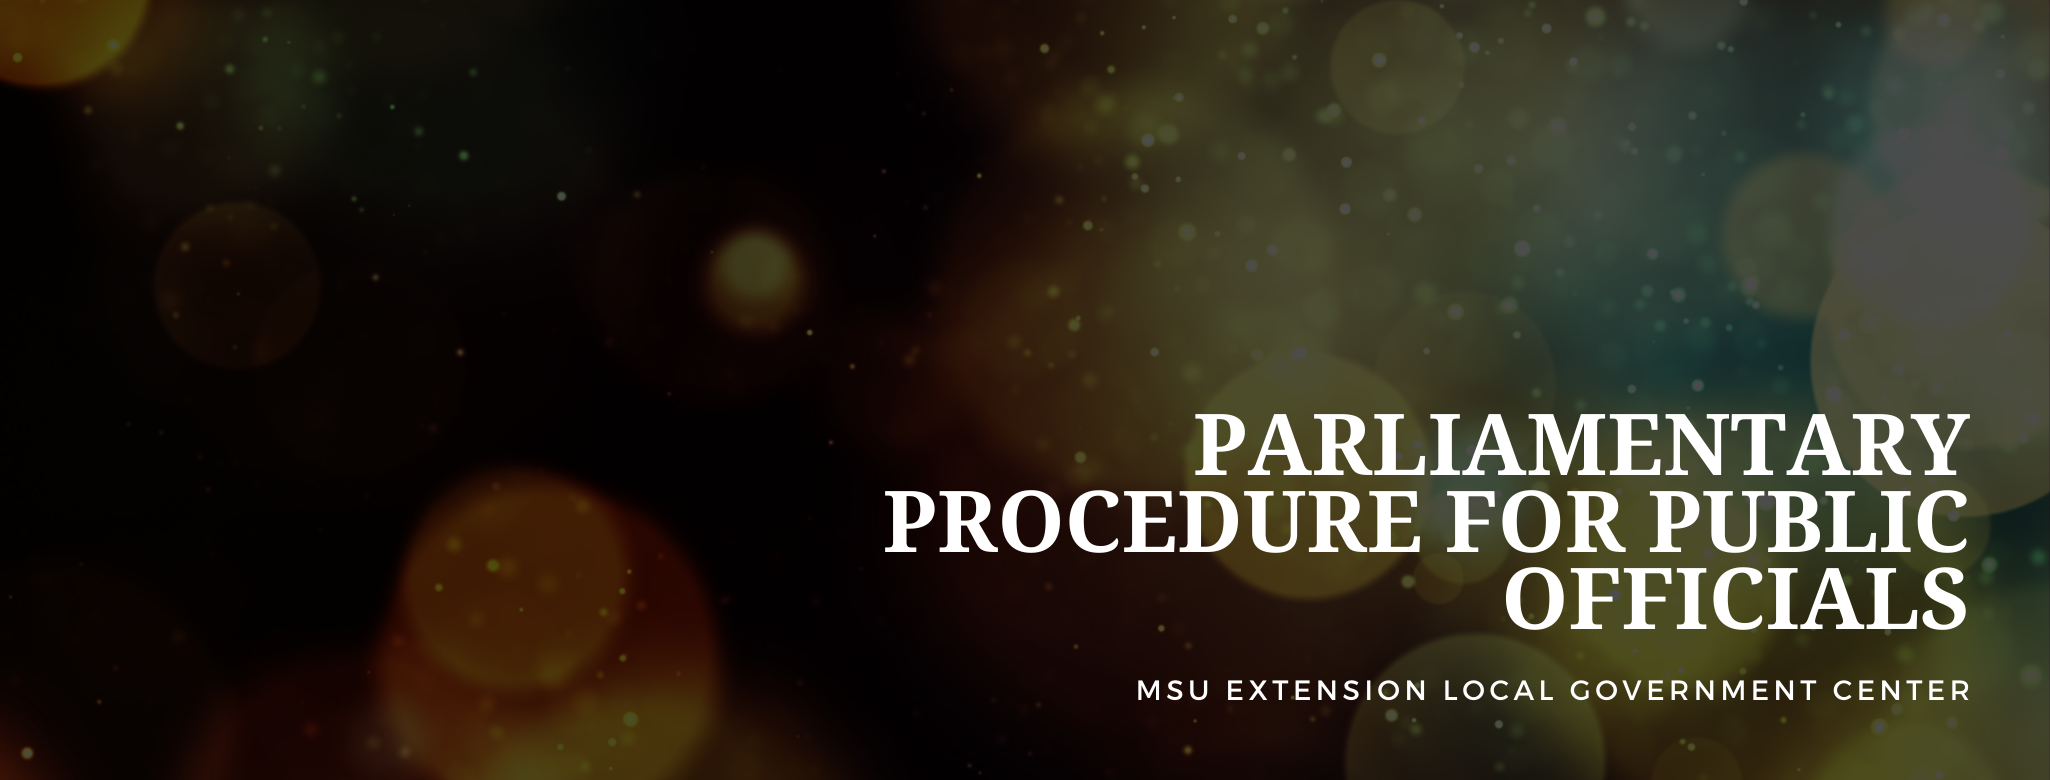 Parliamentary Procedure for Public Officials MSU Extension Local Government Center